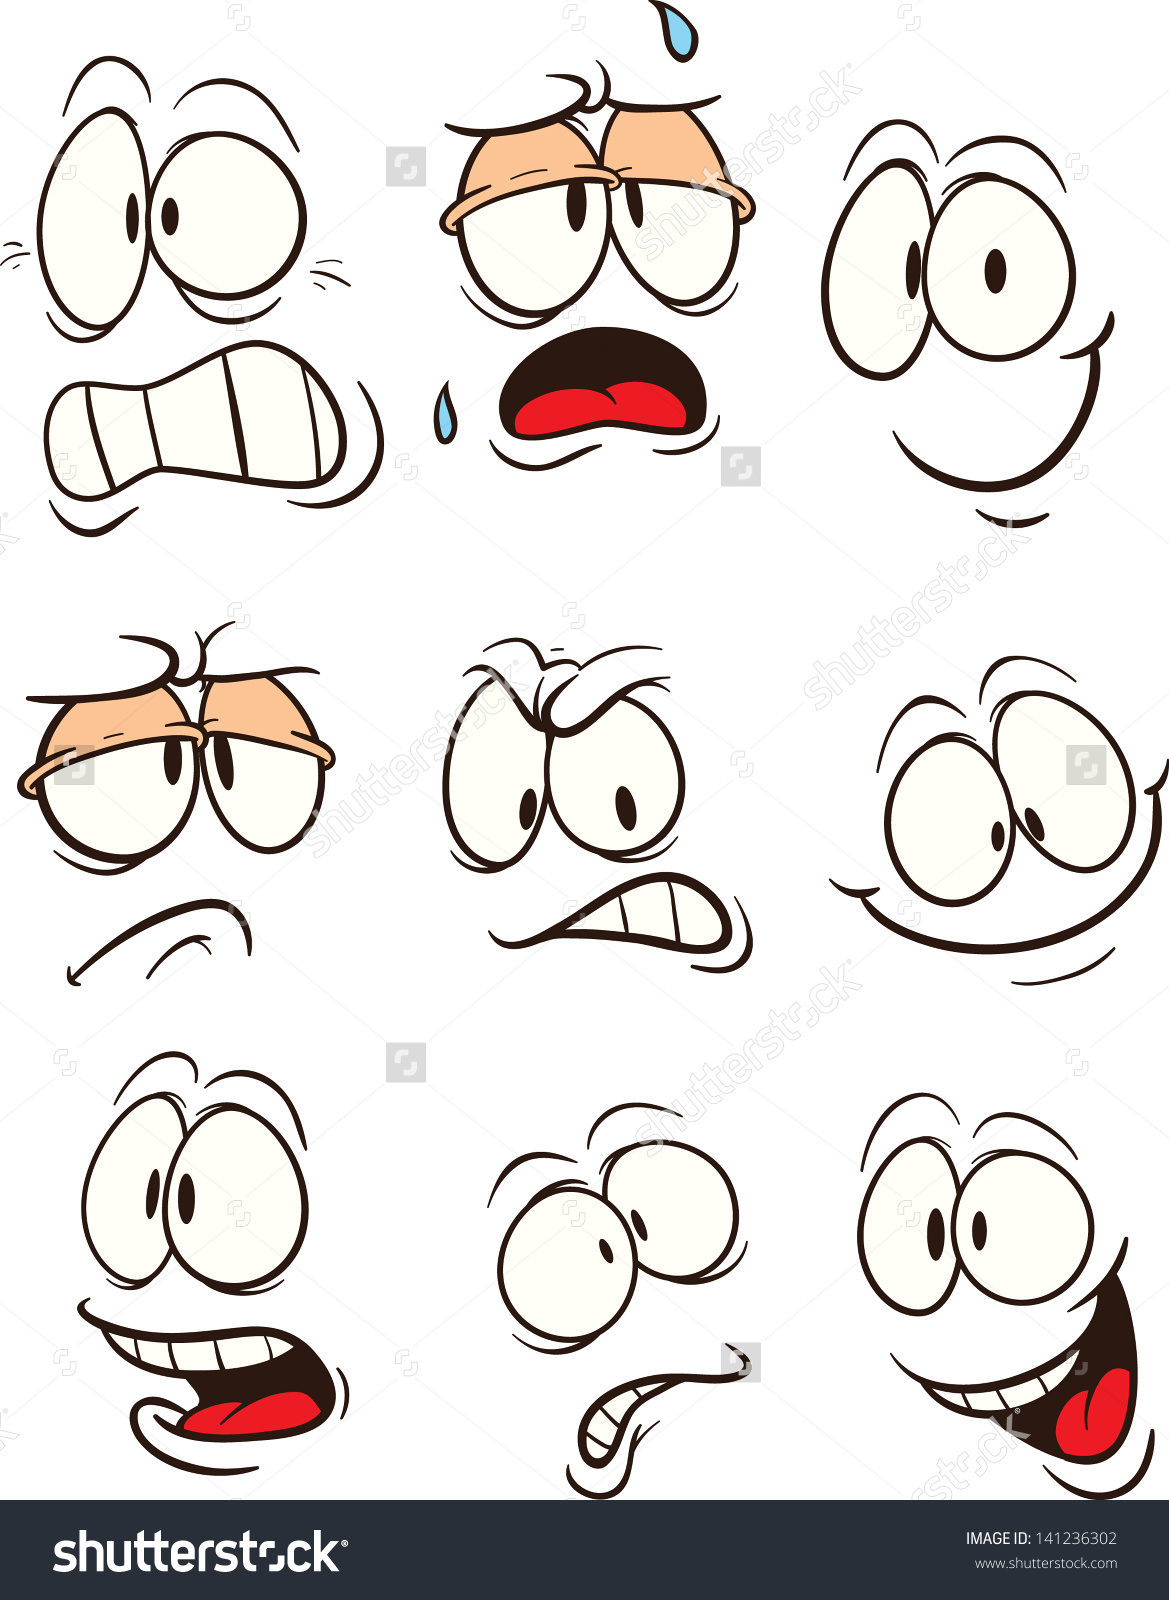 Cartoon Faces Vector Clip Art Illustration Stock Vector 141236302.